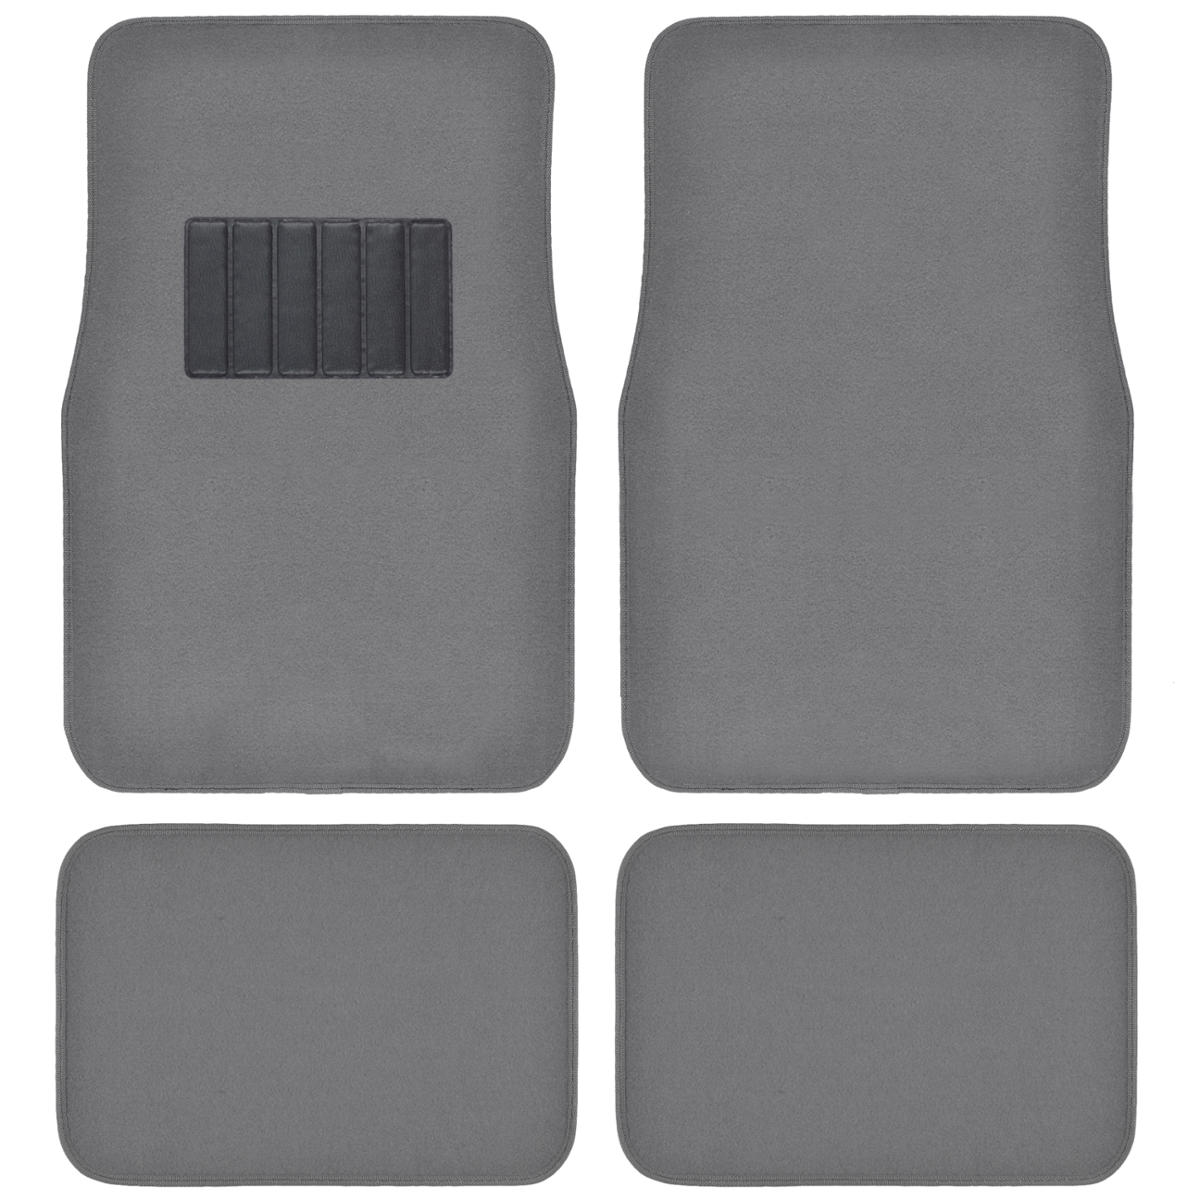 auto floor mats for car classic carpet w heelpad medium gray set front rear ebay. Black Bedroom Furniture Sets. Home Design Ideas